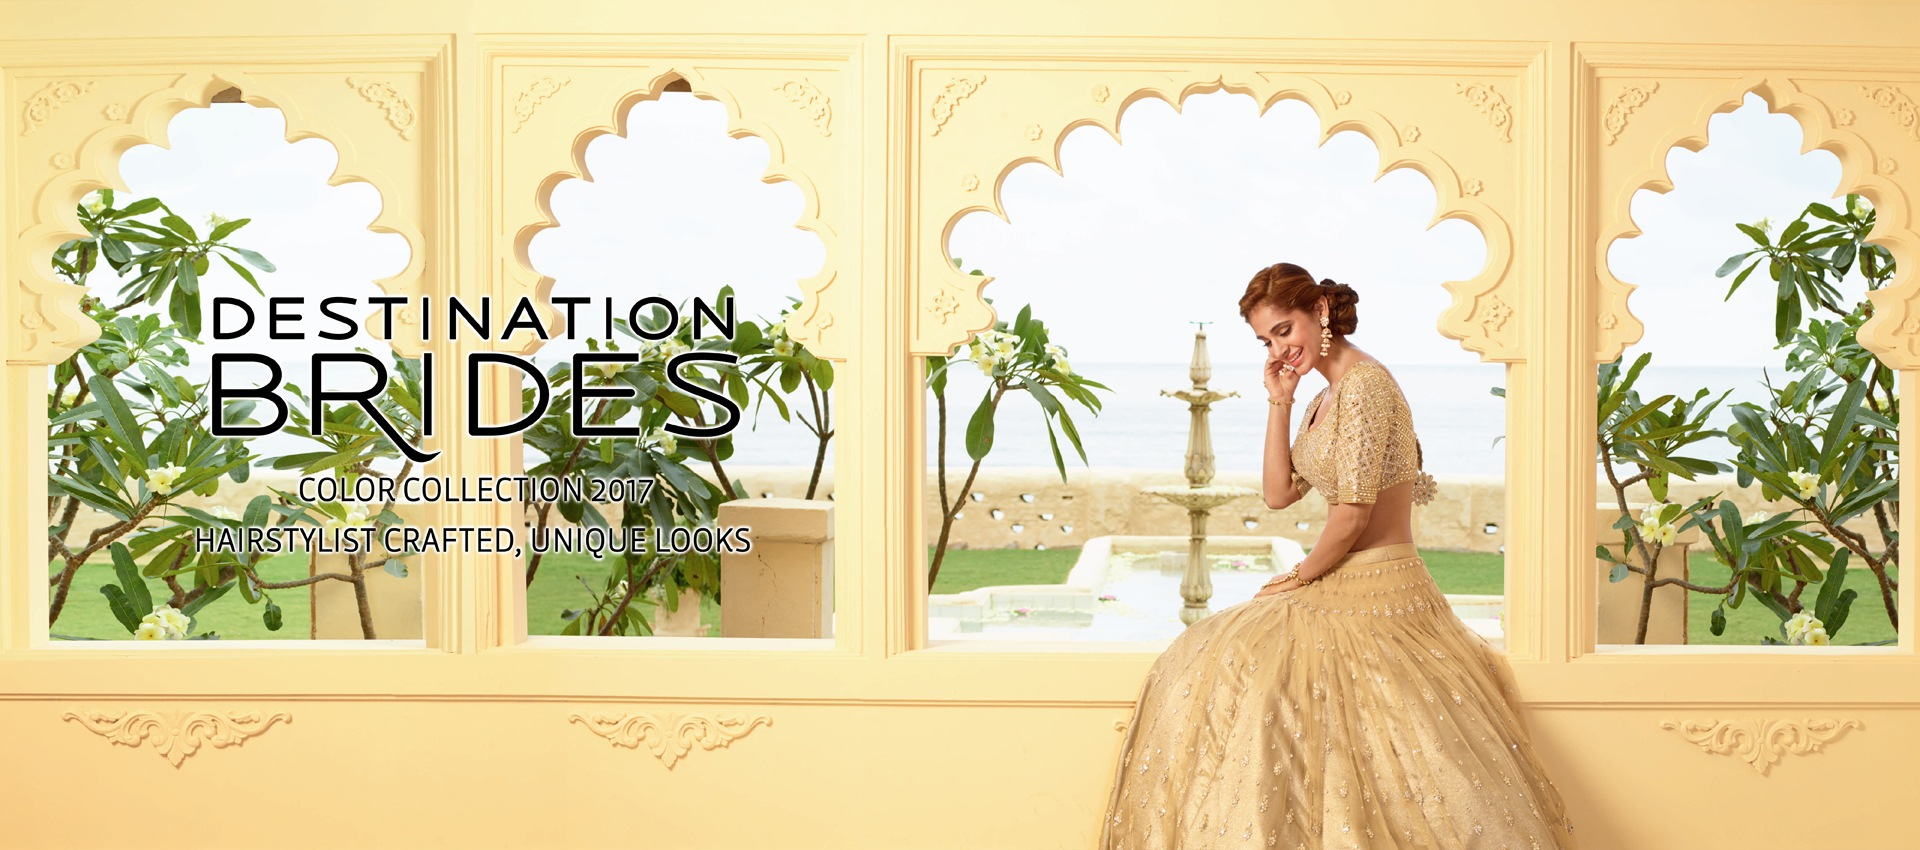 Destination Bride_1920x850_B-01